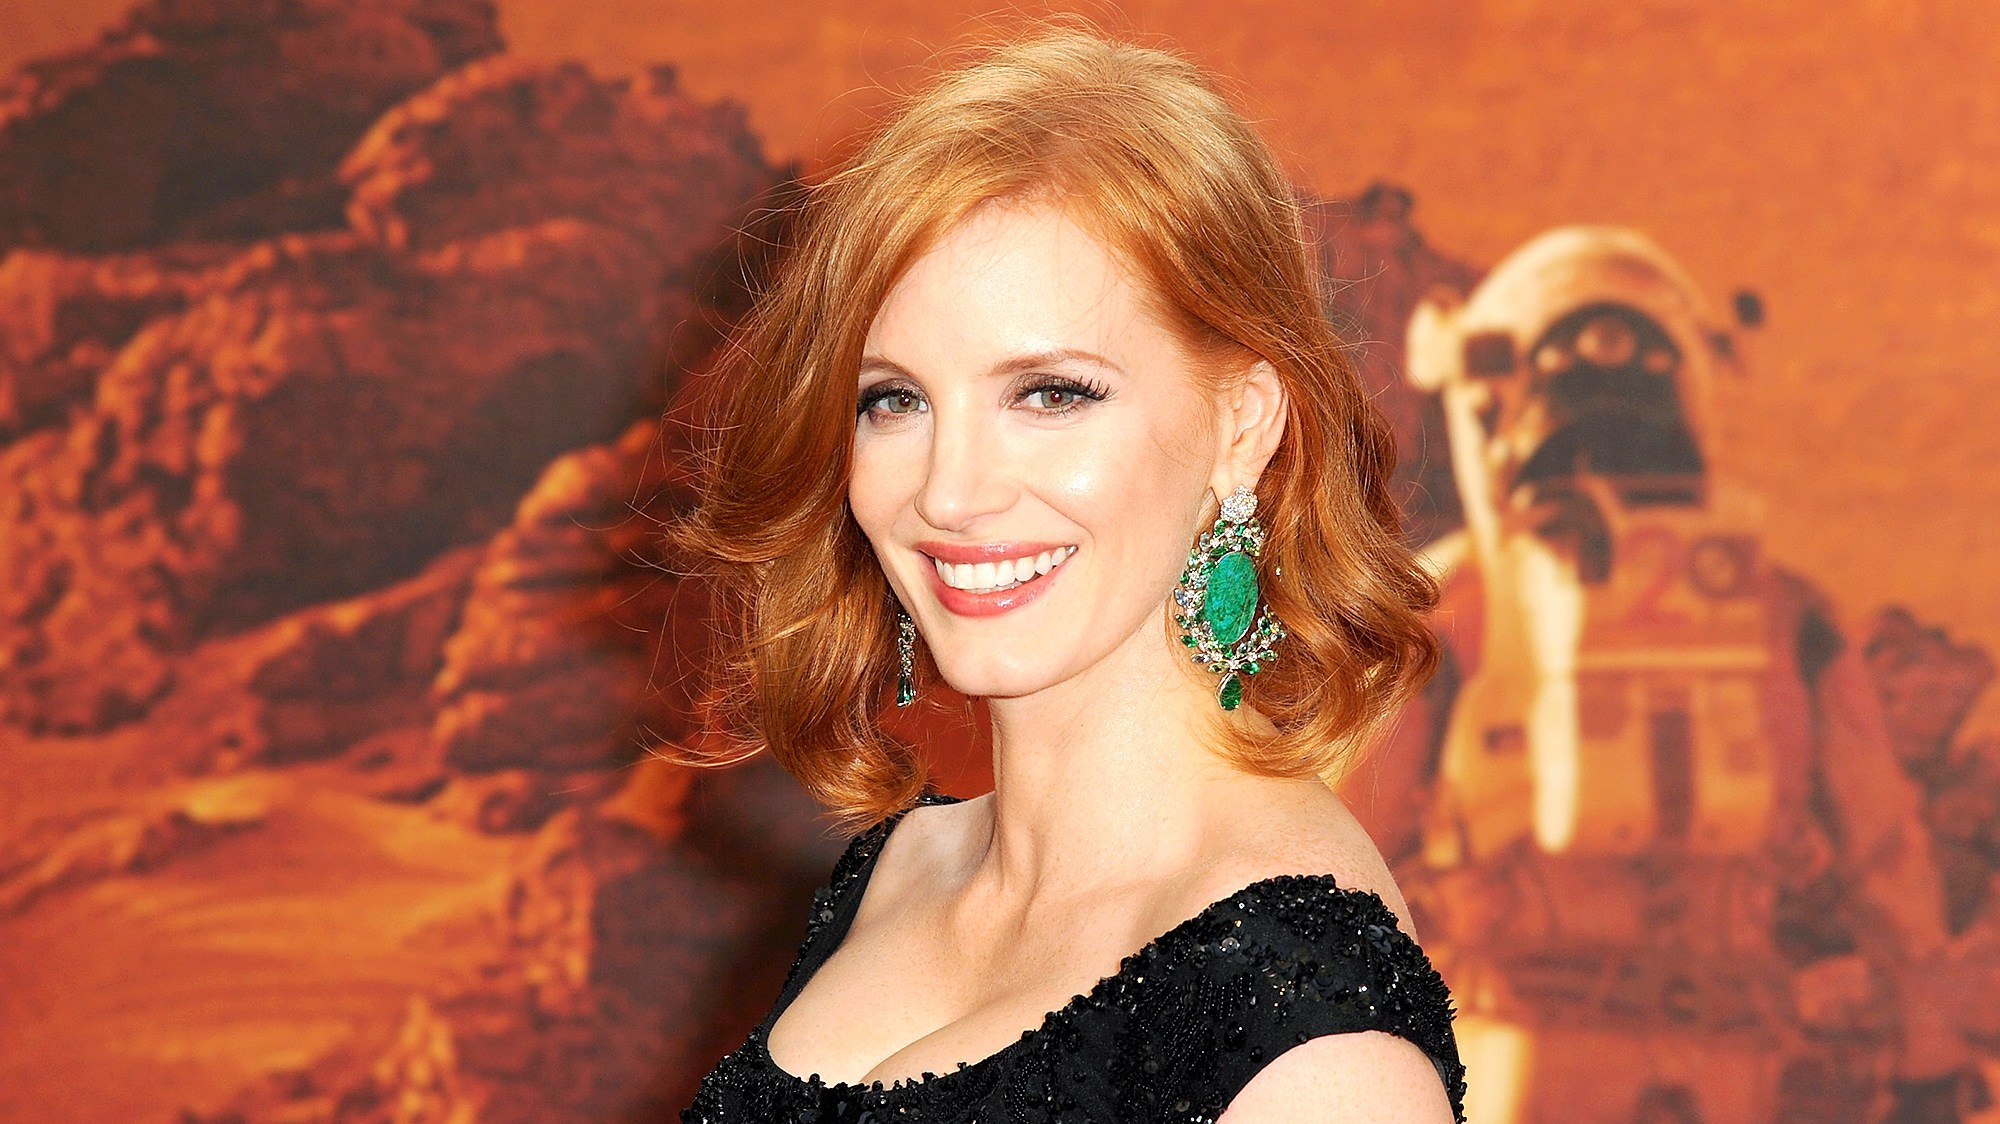 Jessica Chastain attends the European premiere of